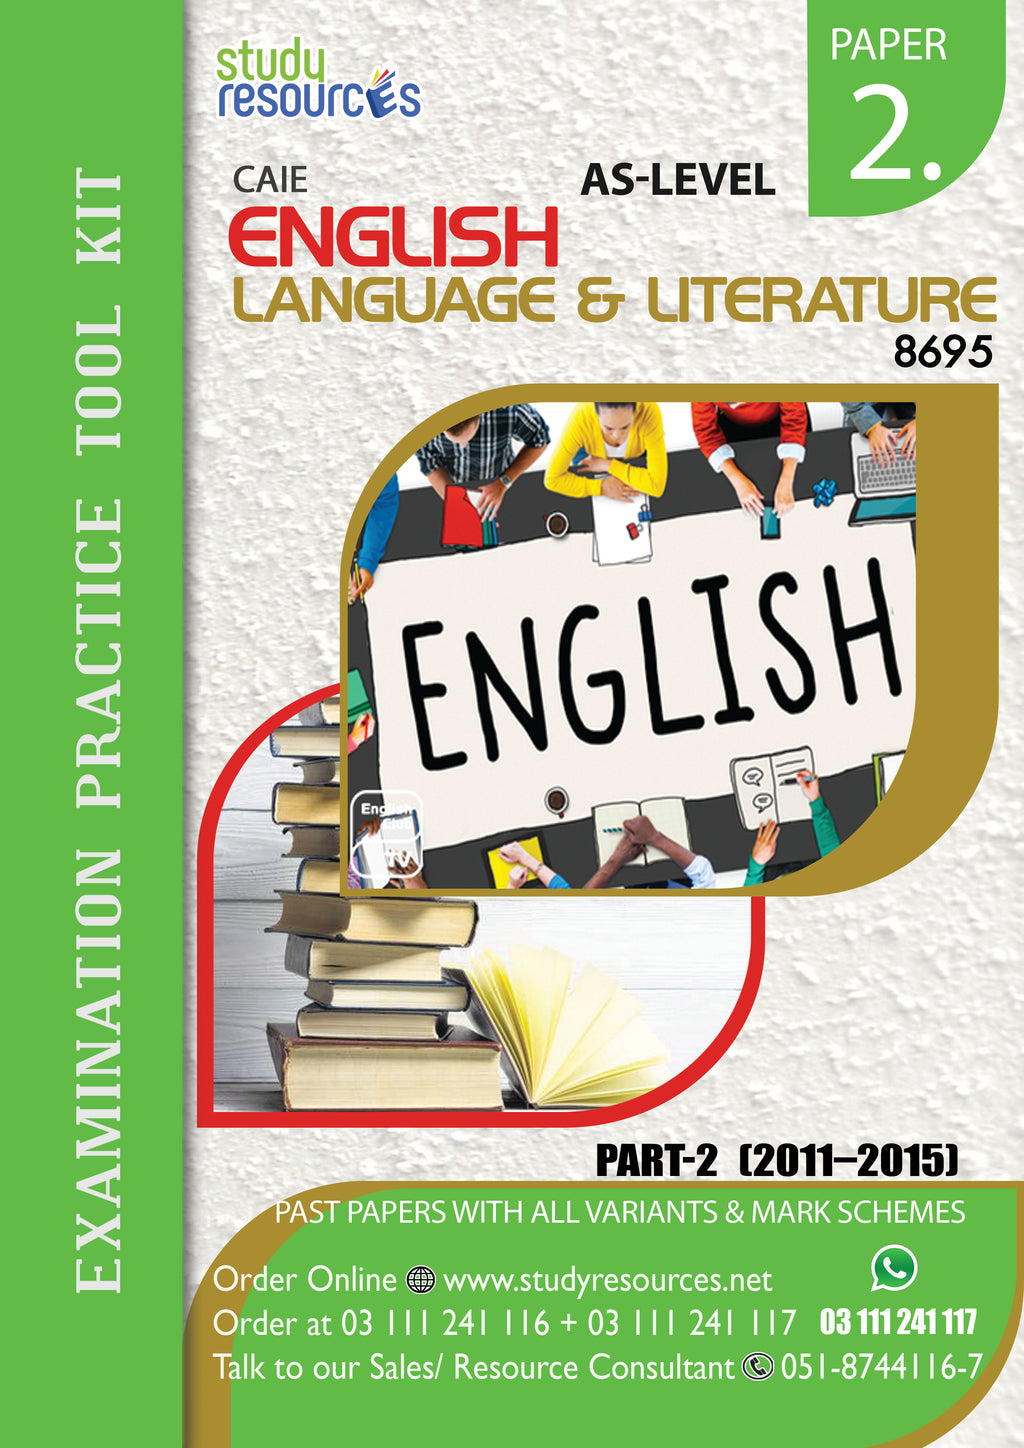 Cambridge AS-level English language and literature (8695) P-2 Past Paper Part-2 (2010-2014)